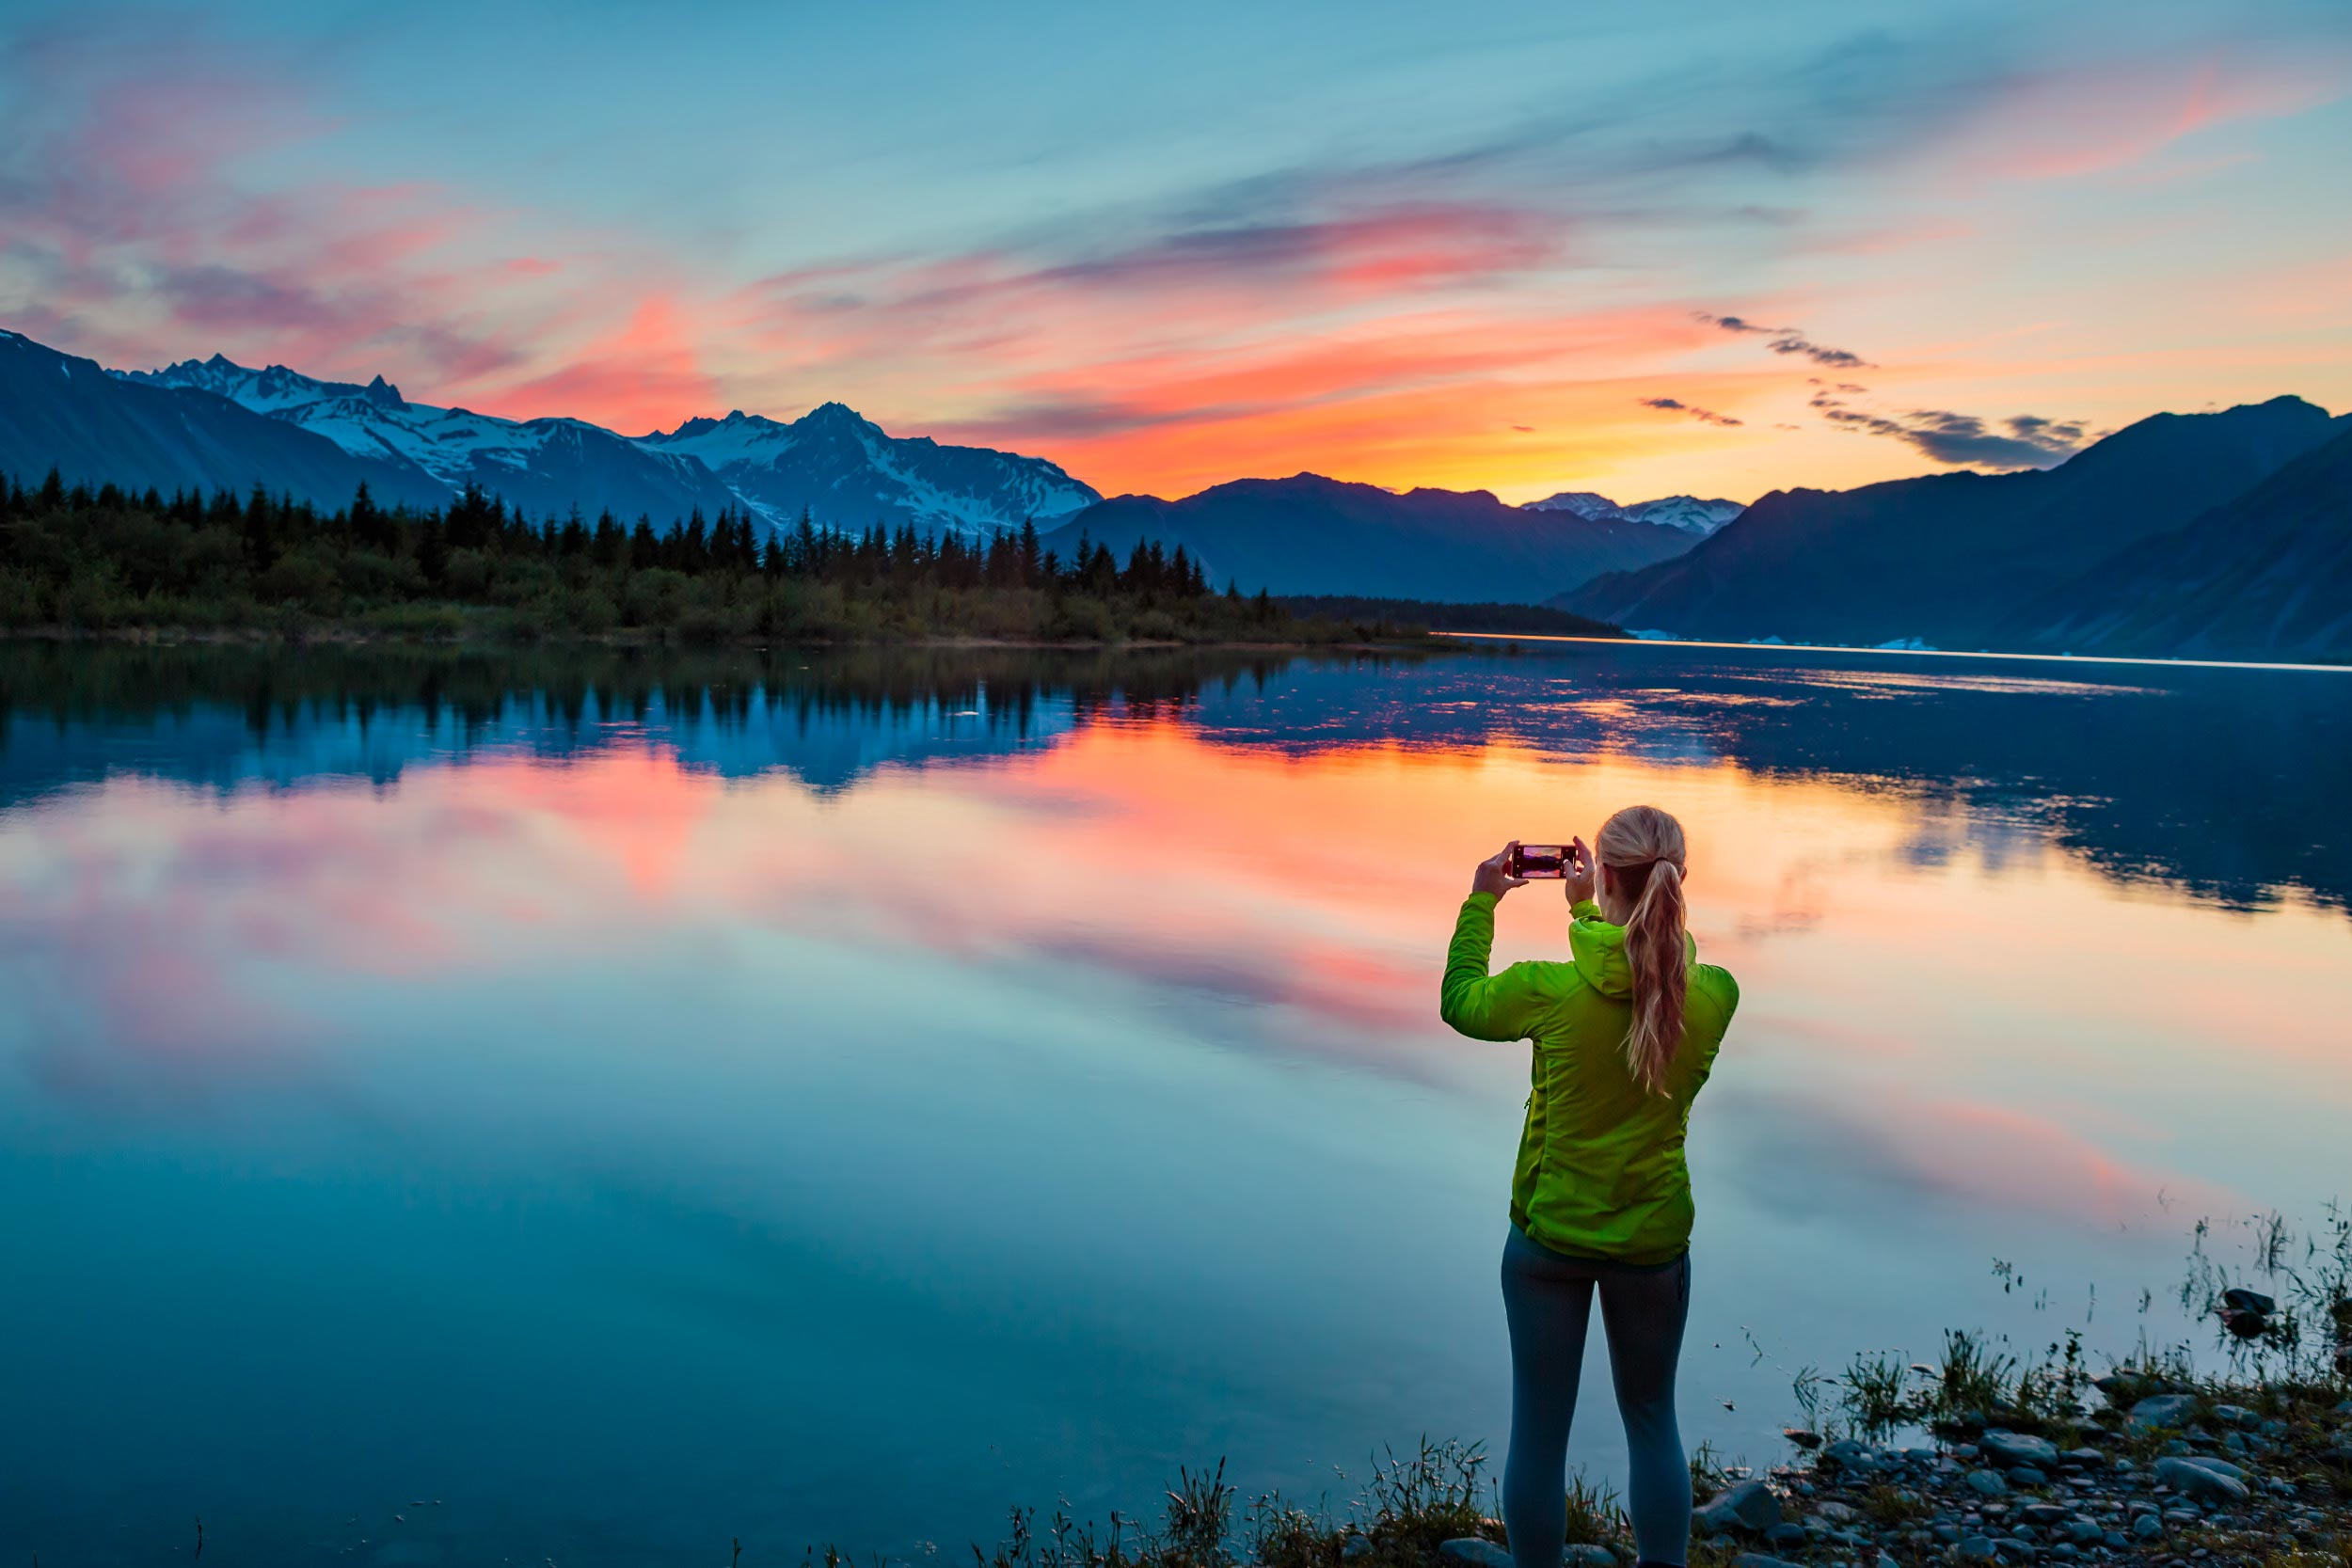 Alaska Adventure Travel Tourism Serene Lake Sunset